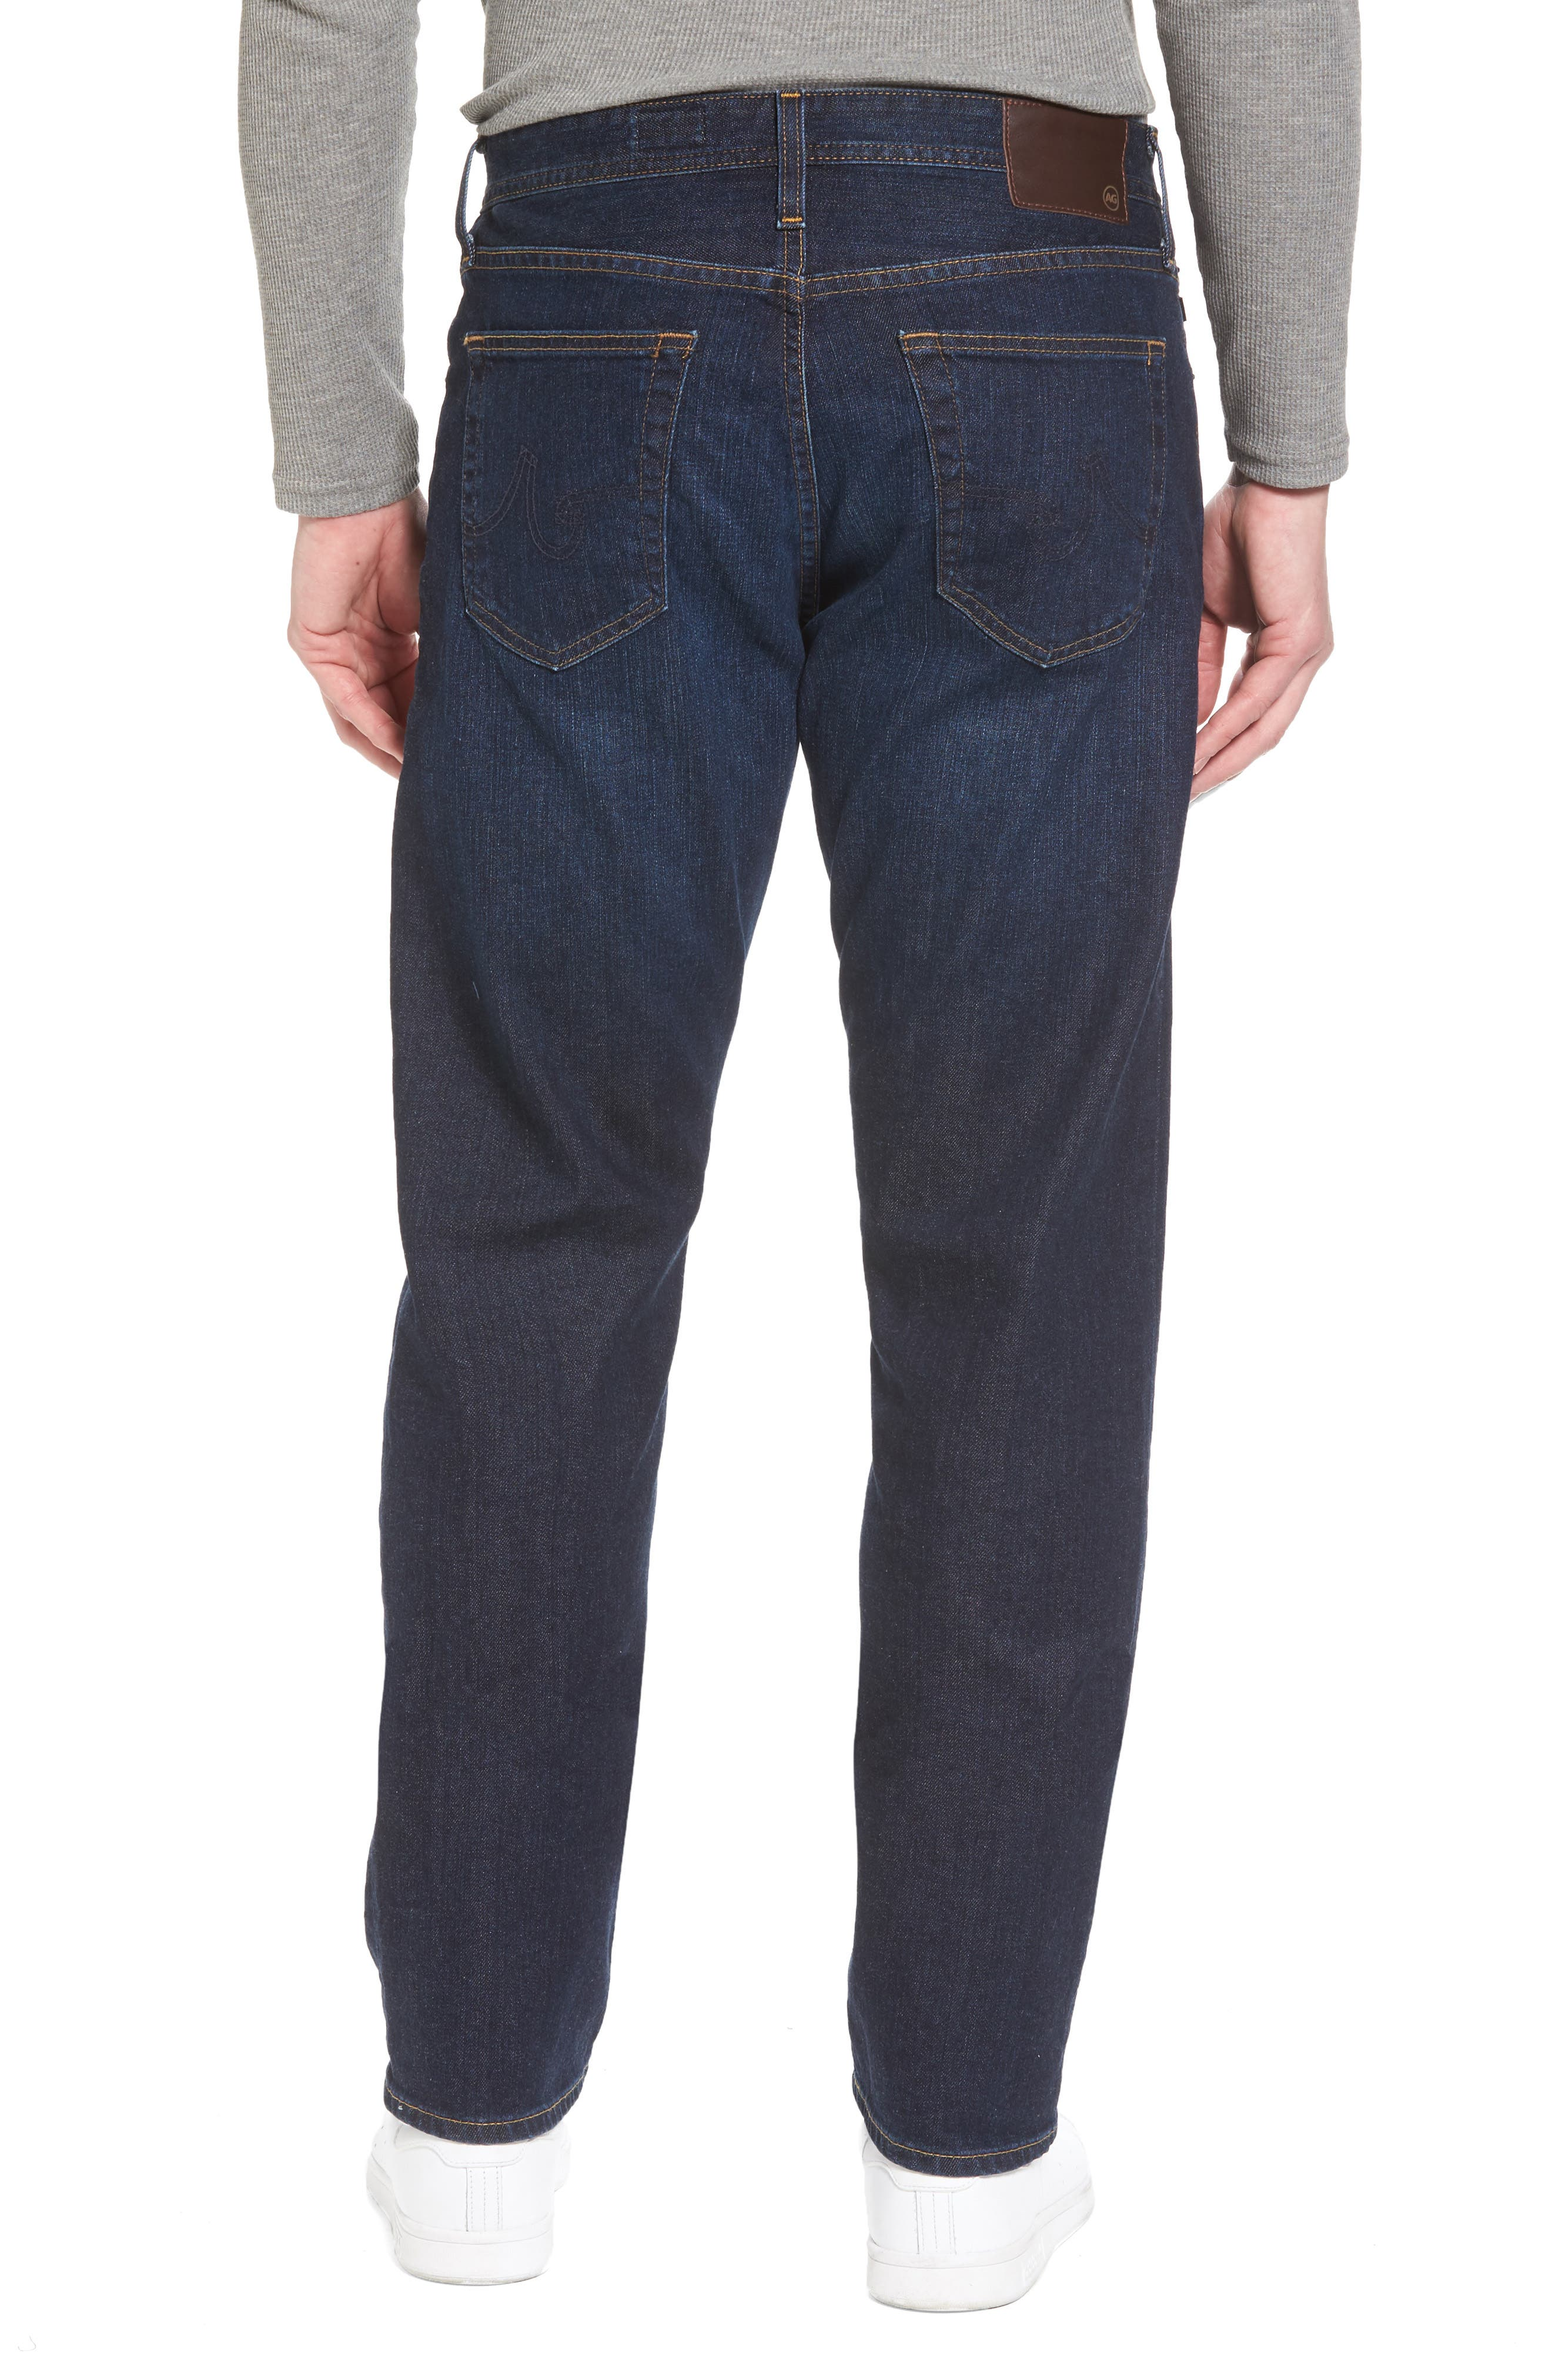 Ives Straight Fit Jeans,                             Alternate thumbnail 2, color,                             400